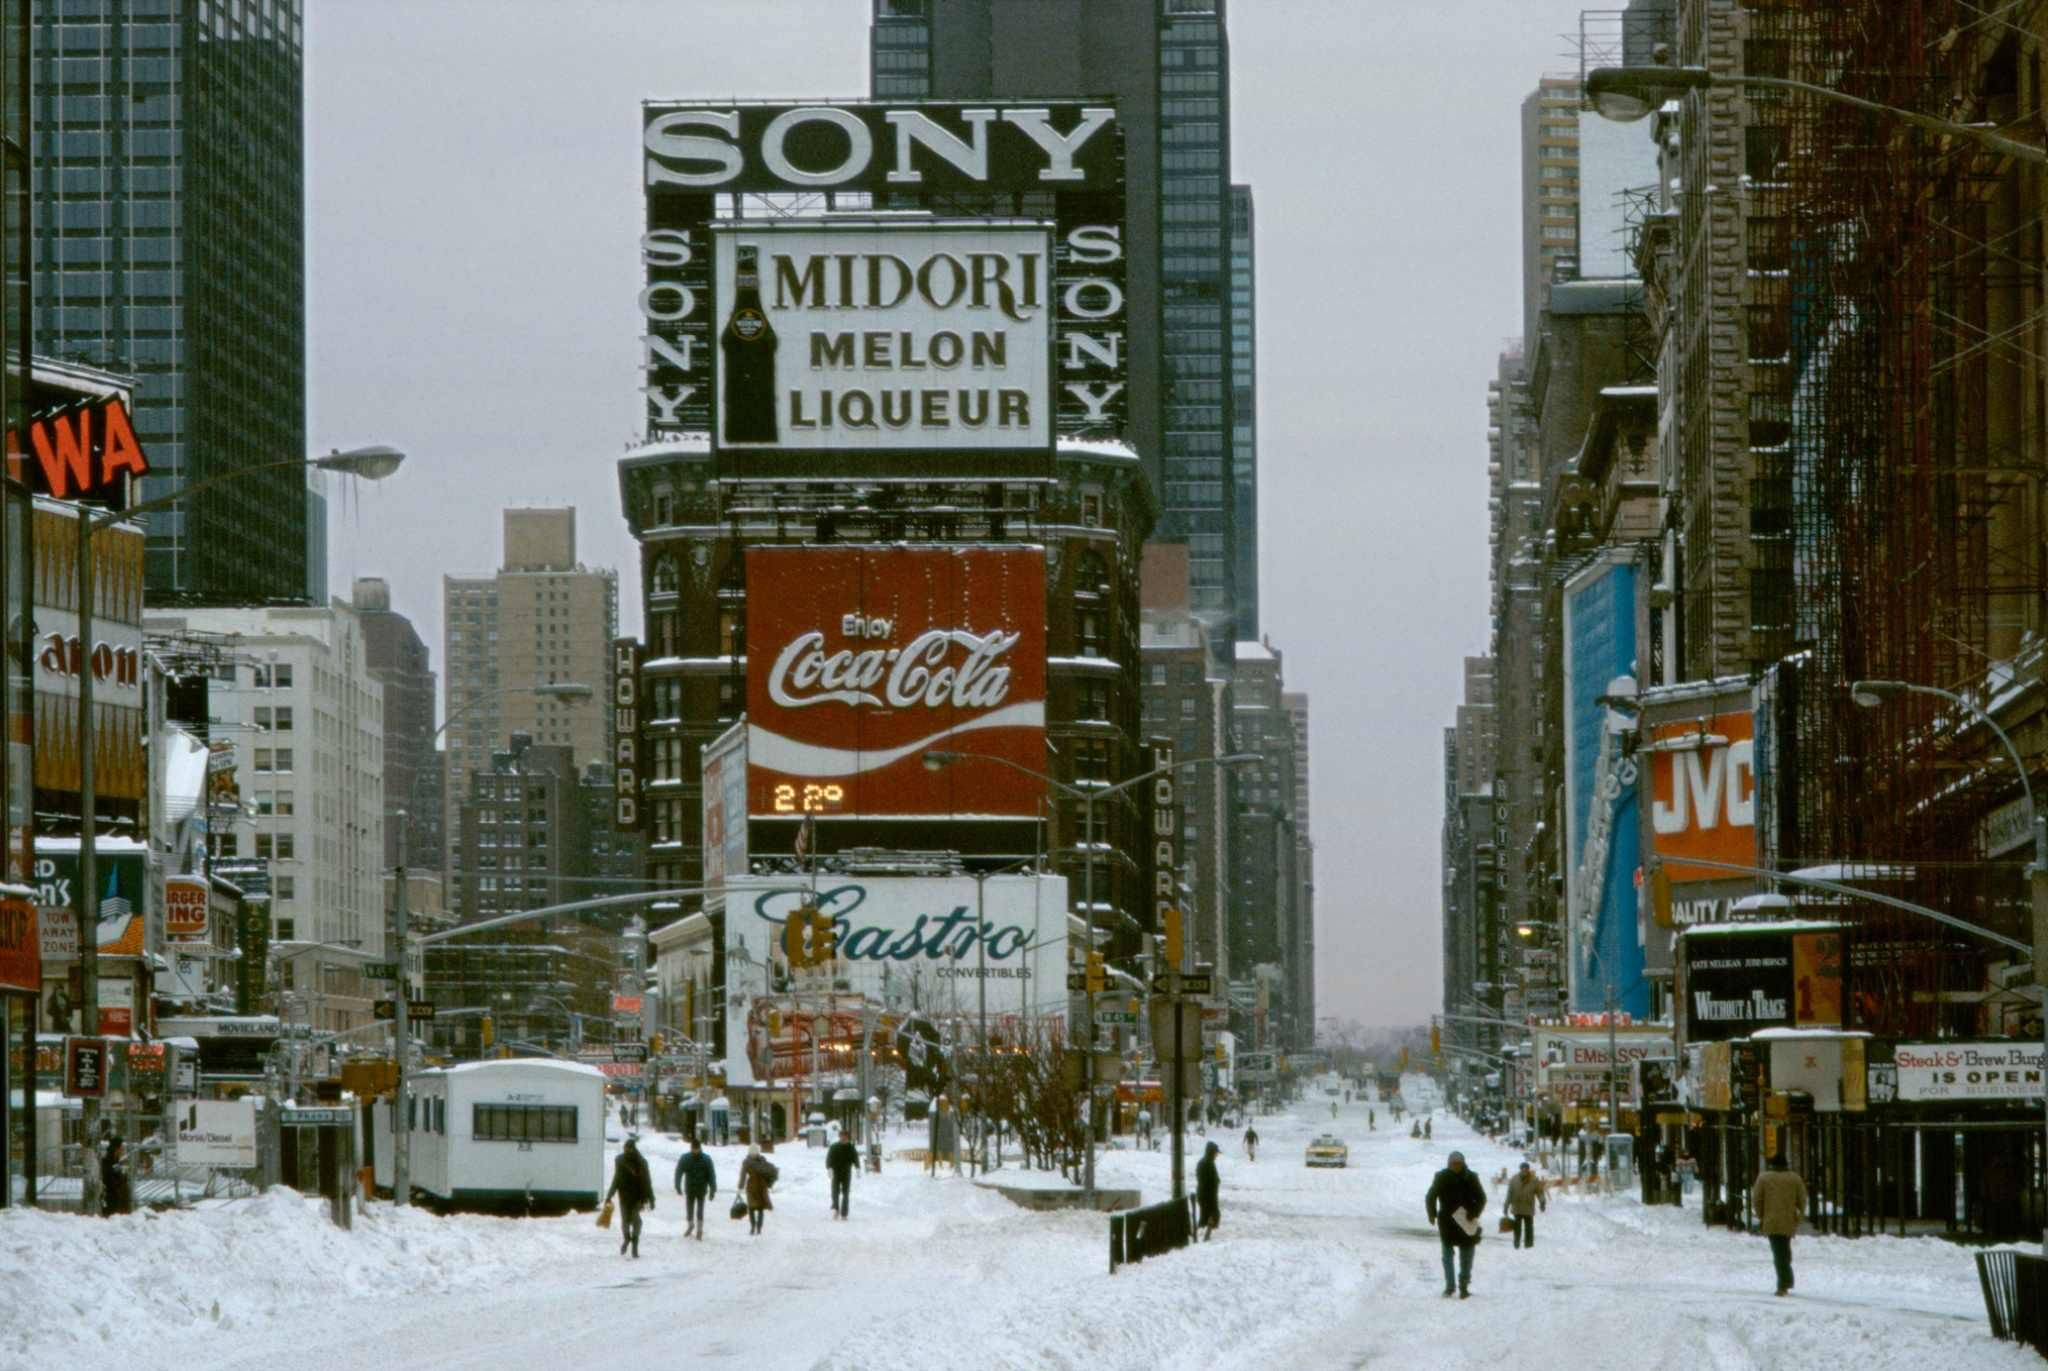 1984 New York Times Square In Snow Storm With Images Nyc Times Square New York Pictures Times Square